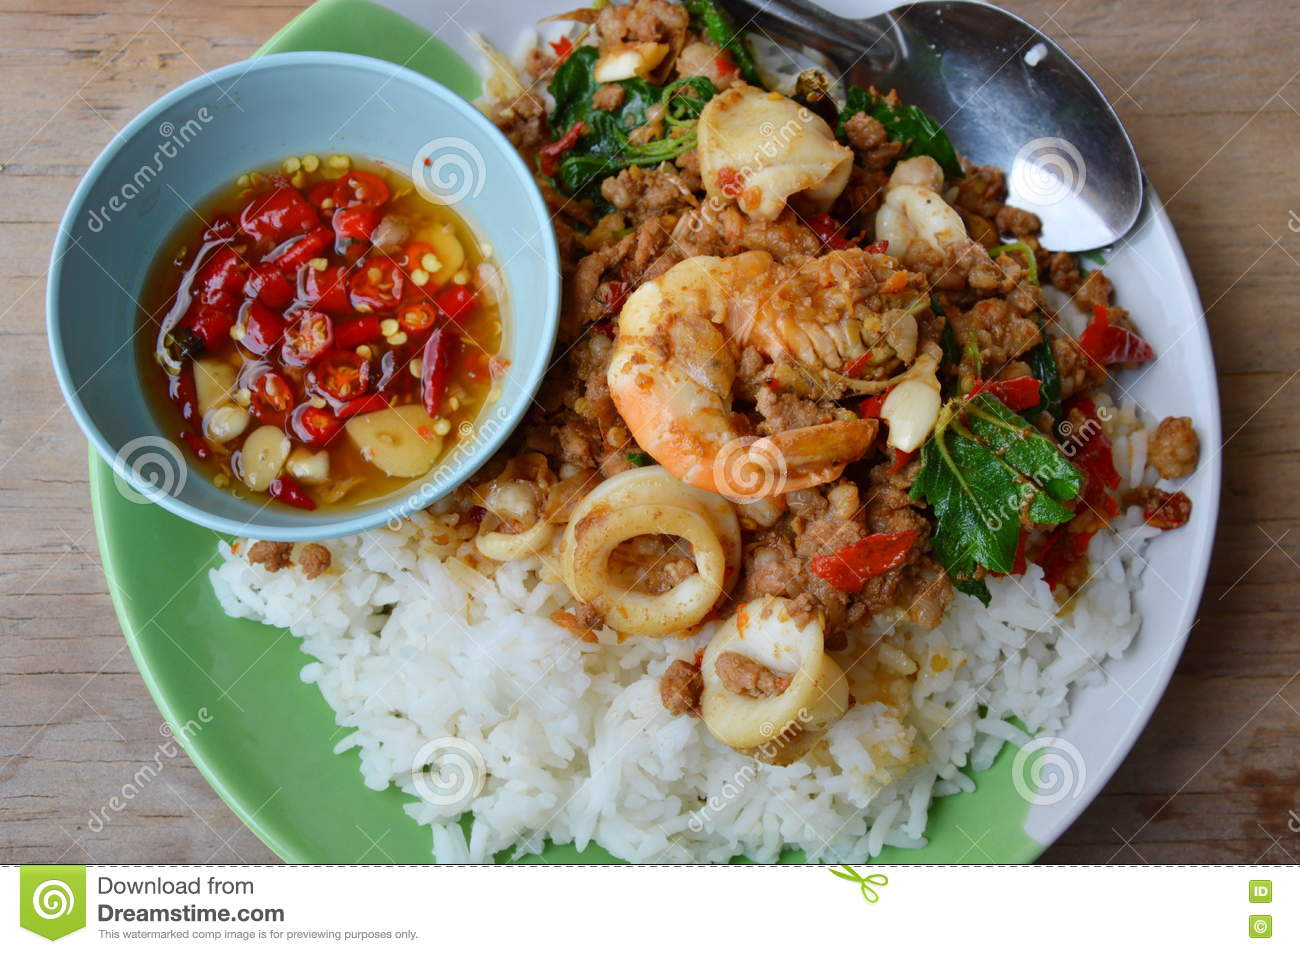 Spicy stir-fried mixed seafood and minced pork with basil leaf on rice